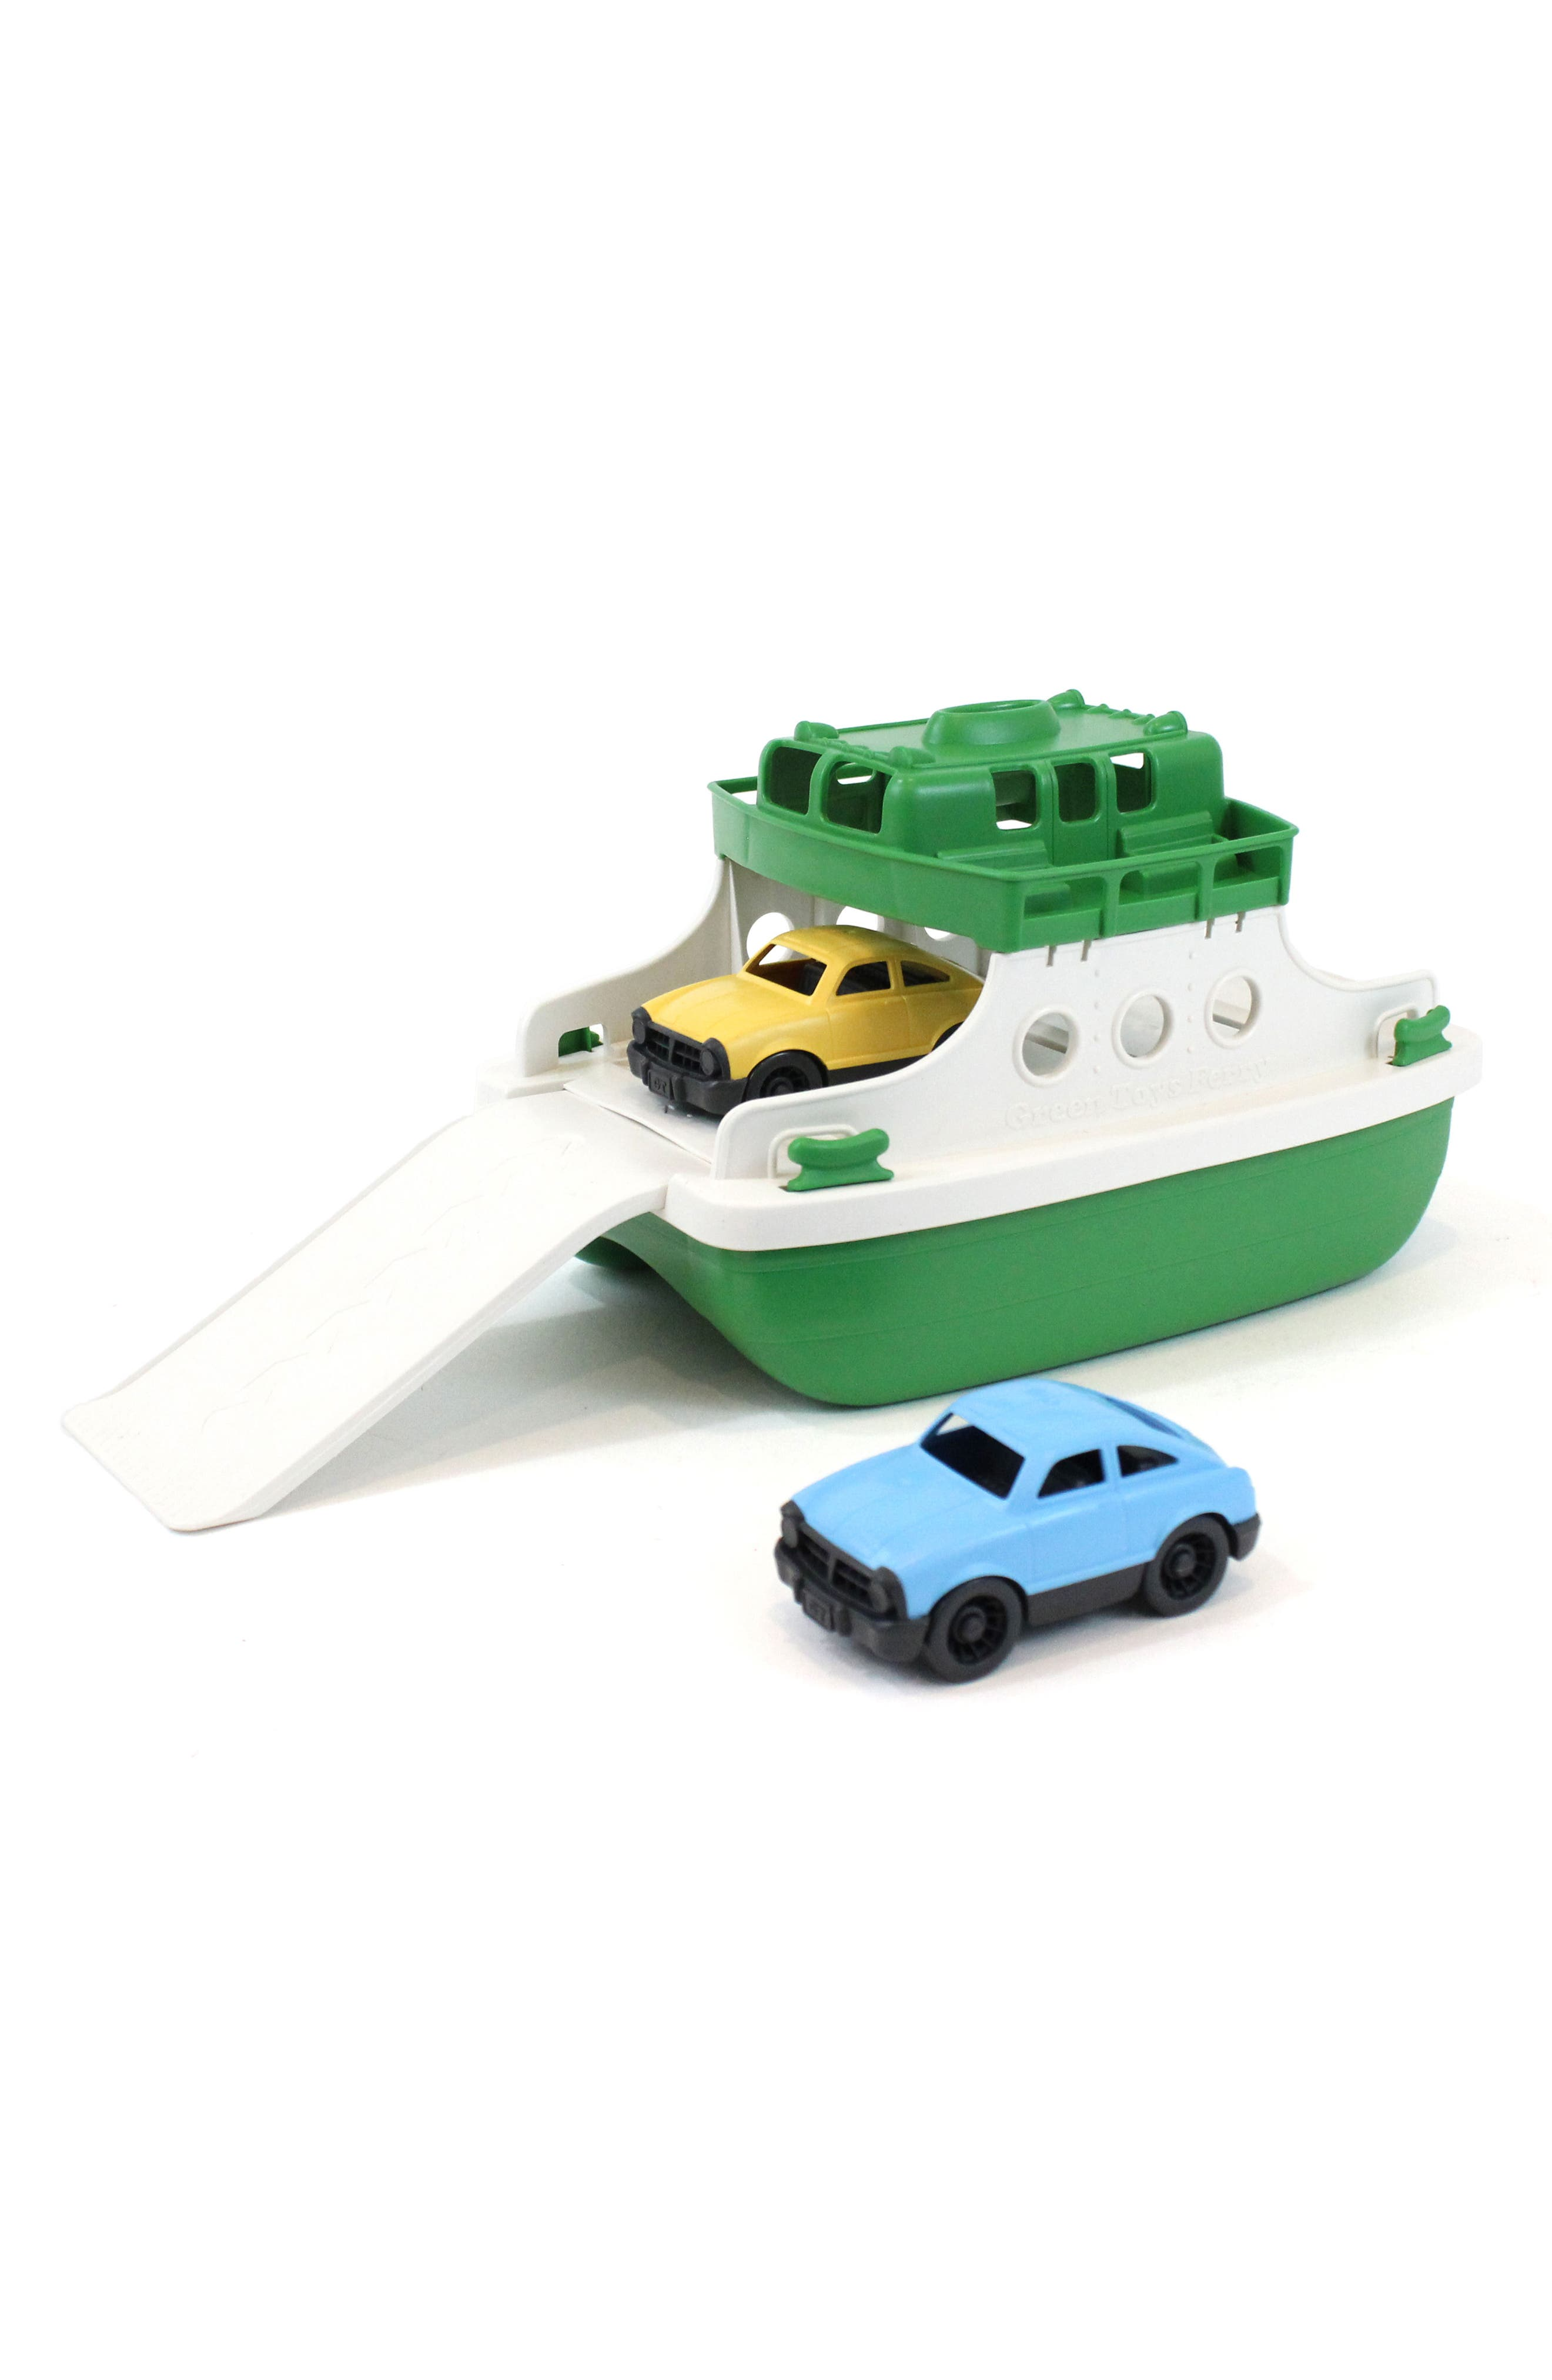 Three-Piece Ferry Boat Toy,                             Alternate thumbnail 3, color,                             Green